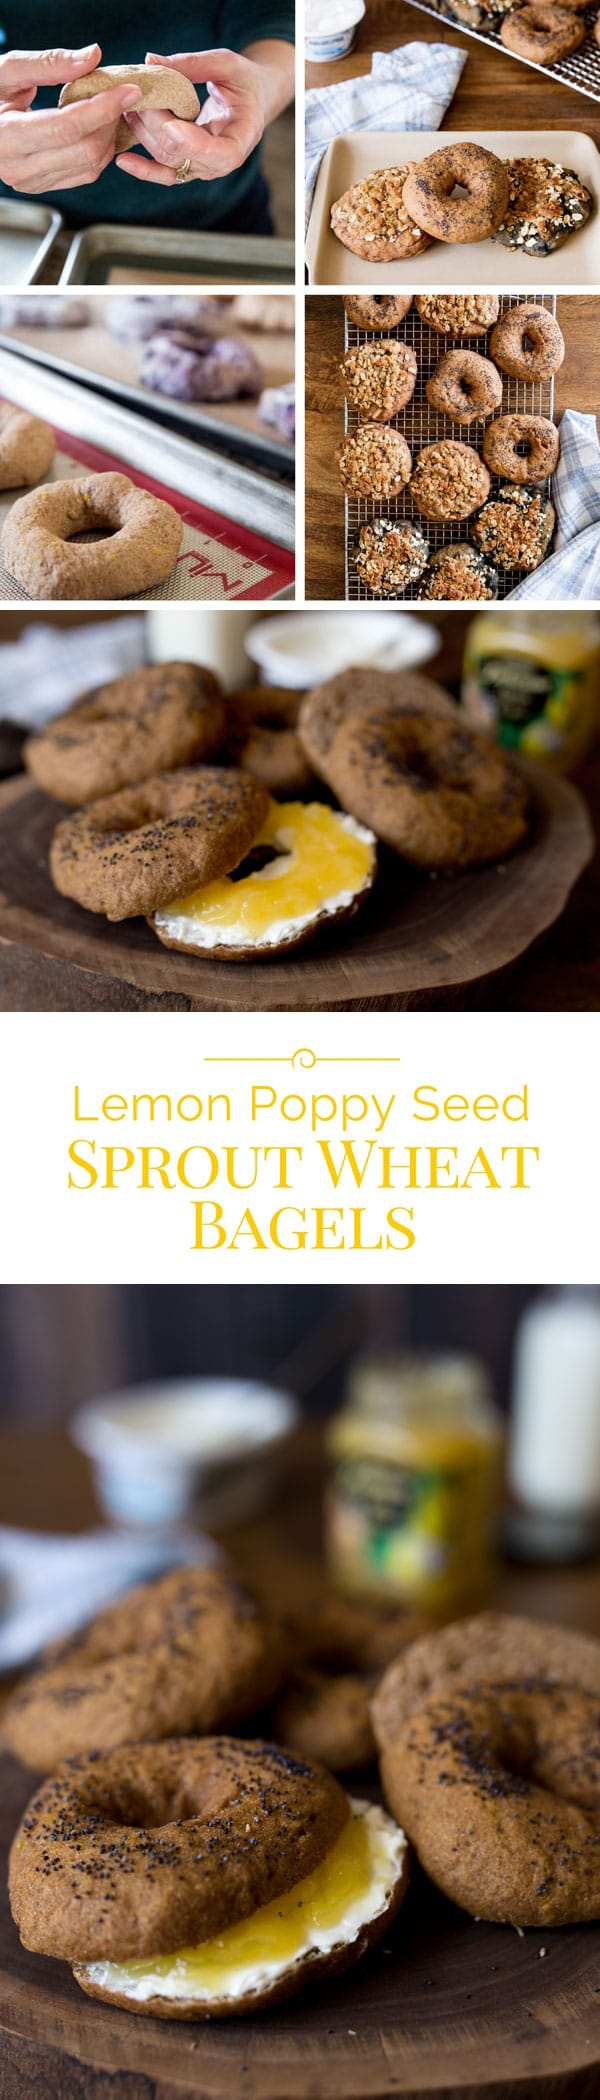 Sprouted-Whole-Wheat-Bagel-Collage-2-Barbara-Bakes